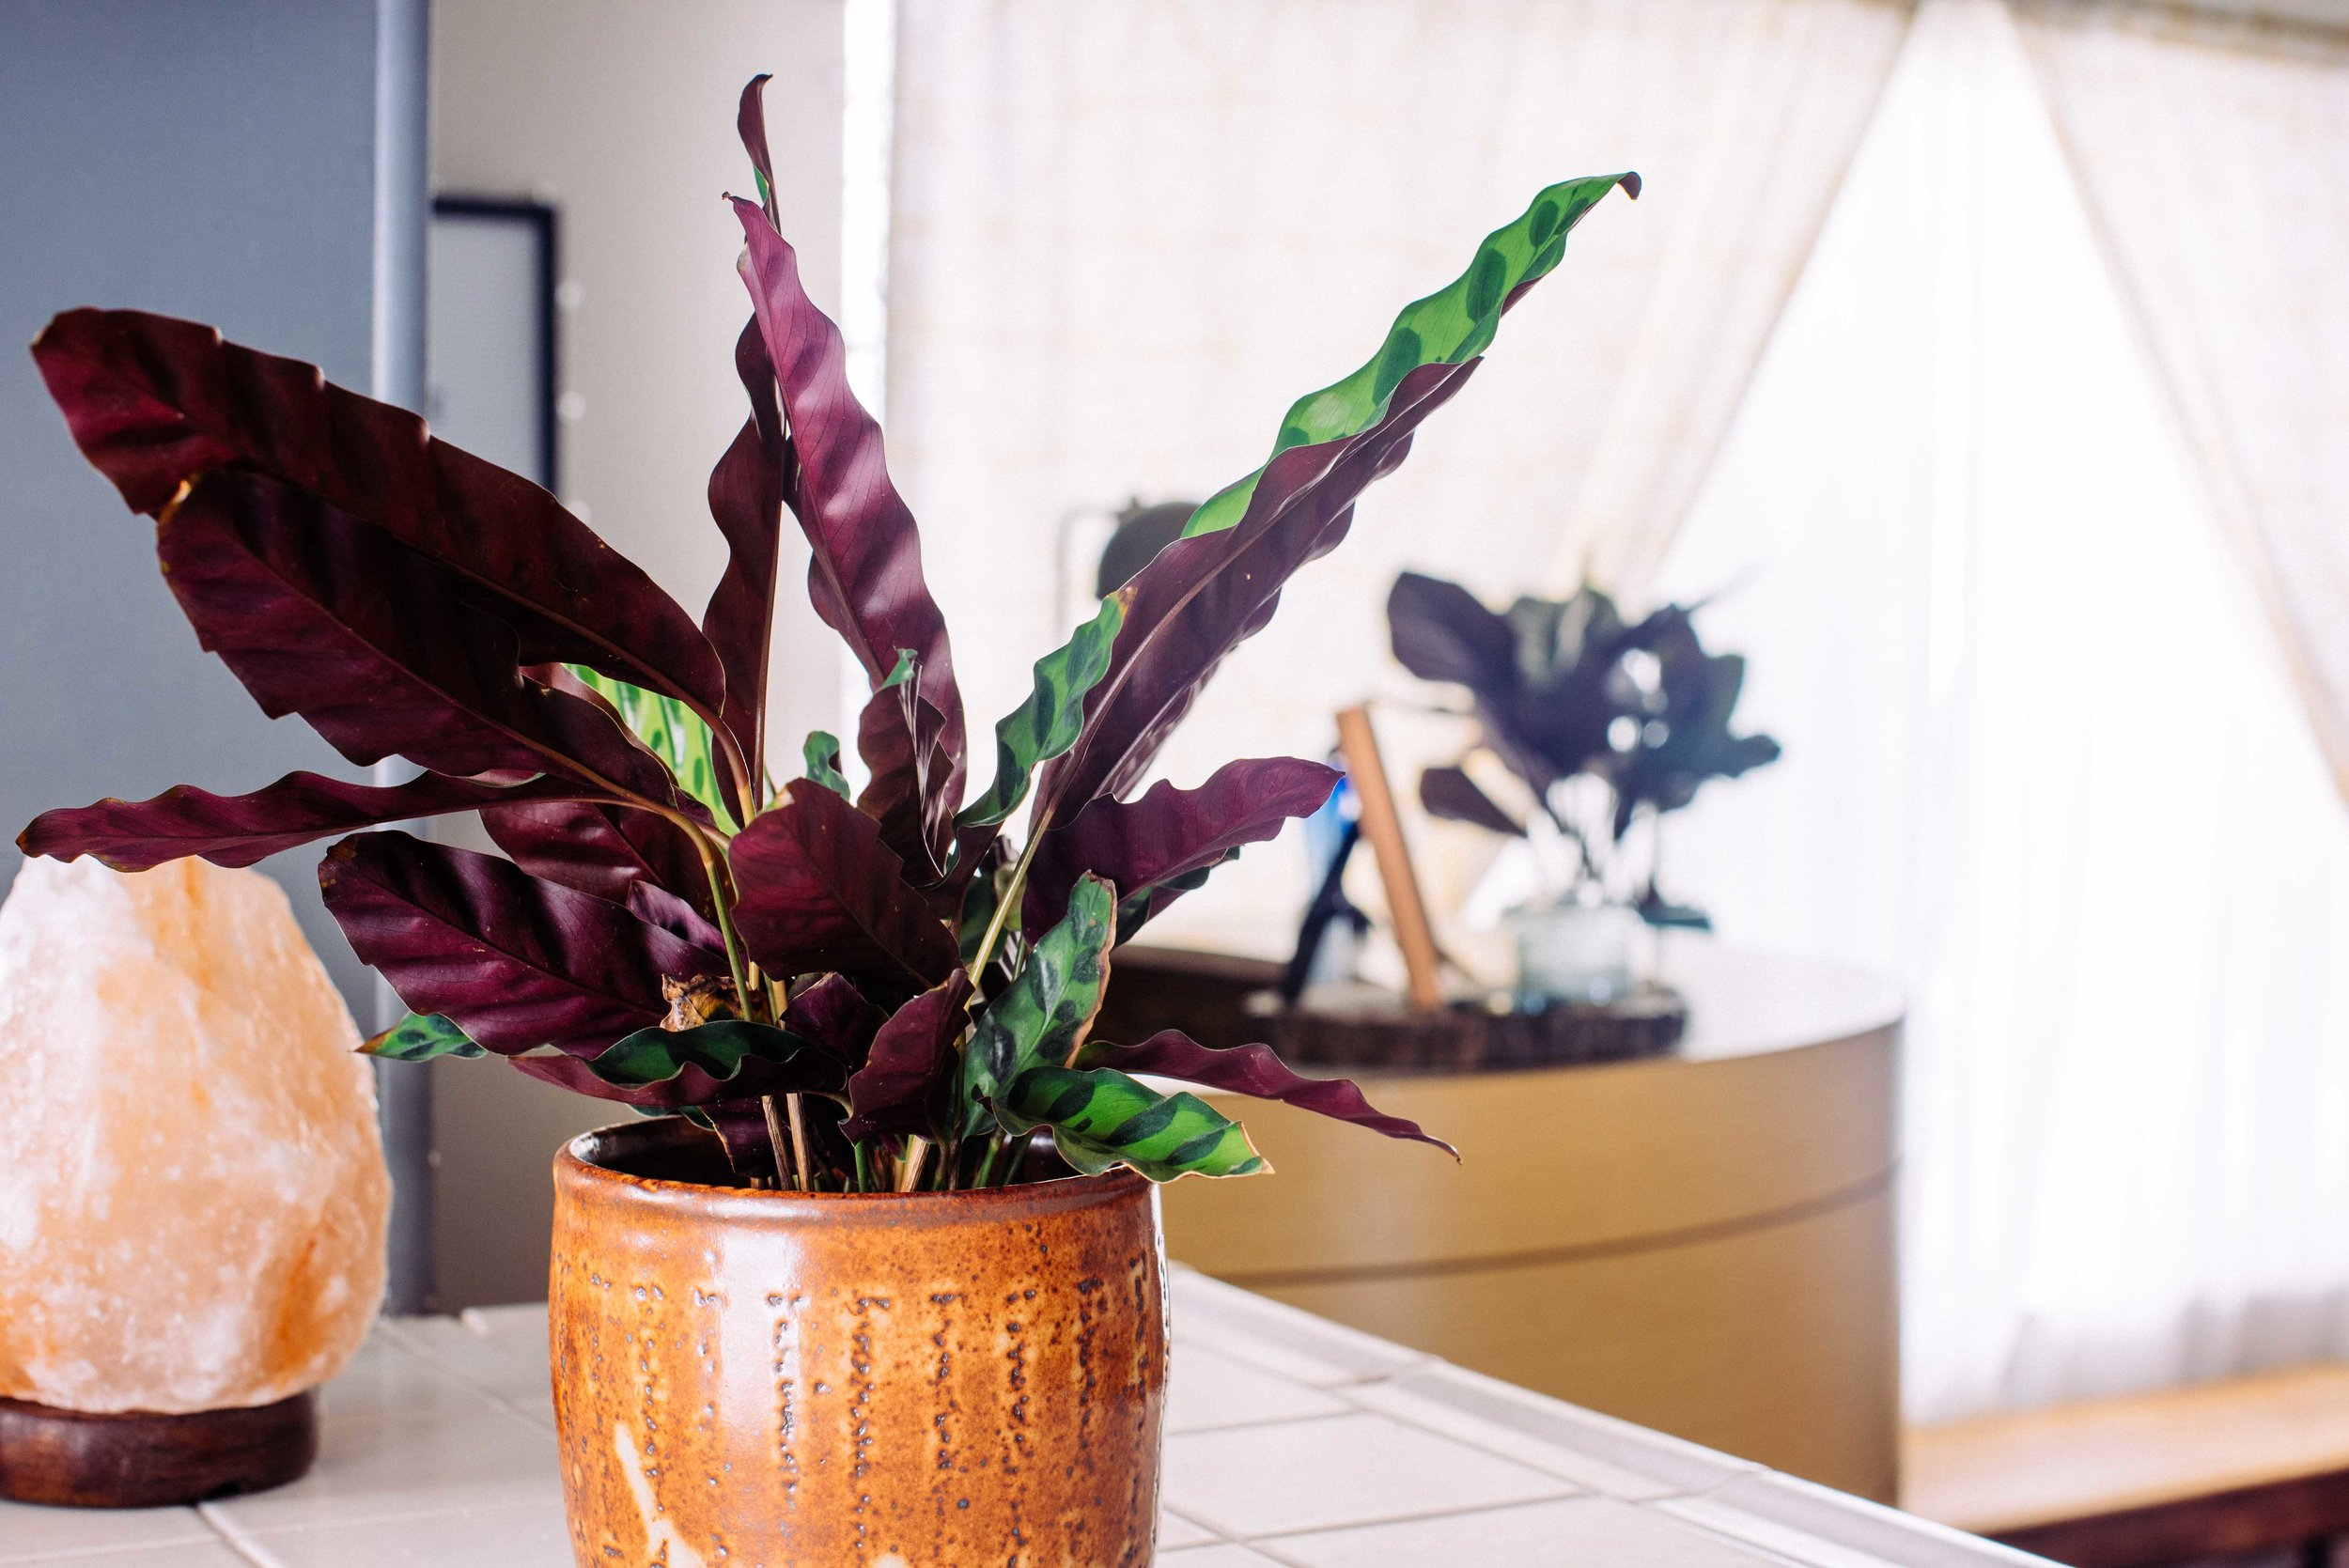 Calathea lancifolia aka Rattlesnake Plant in the day time.